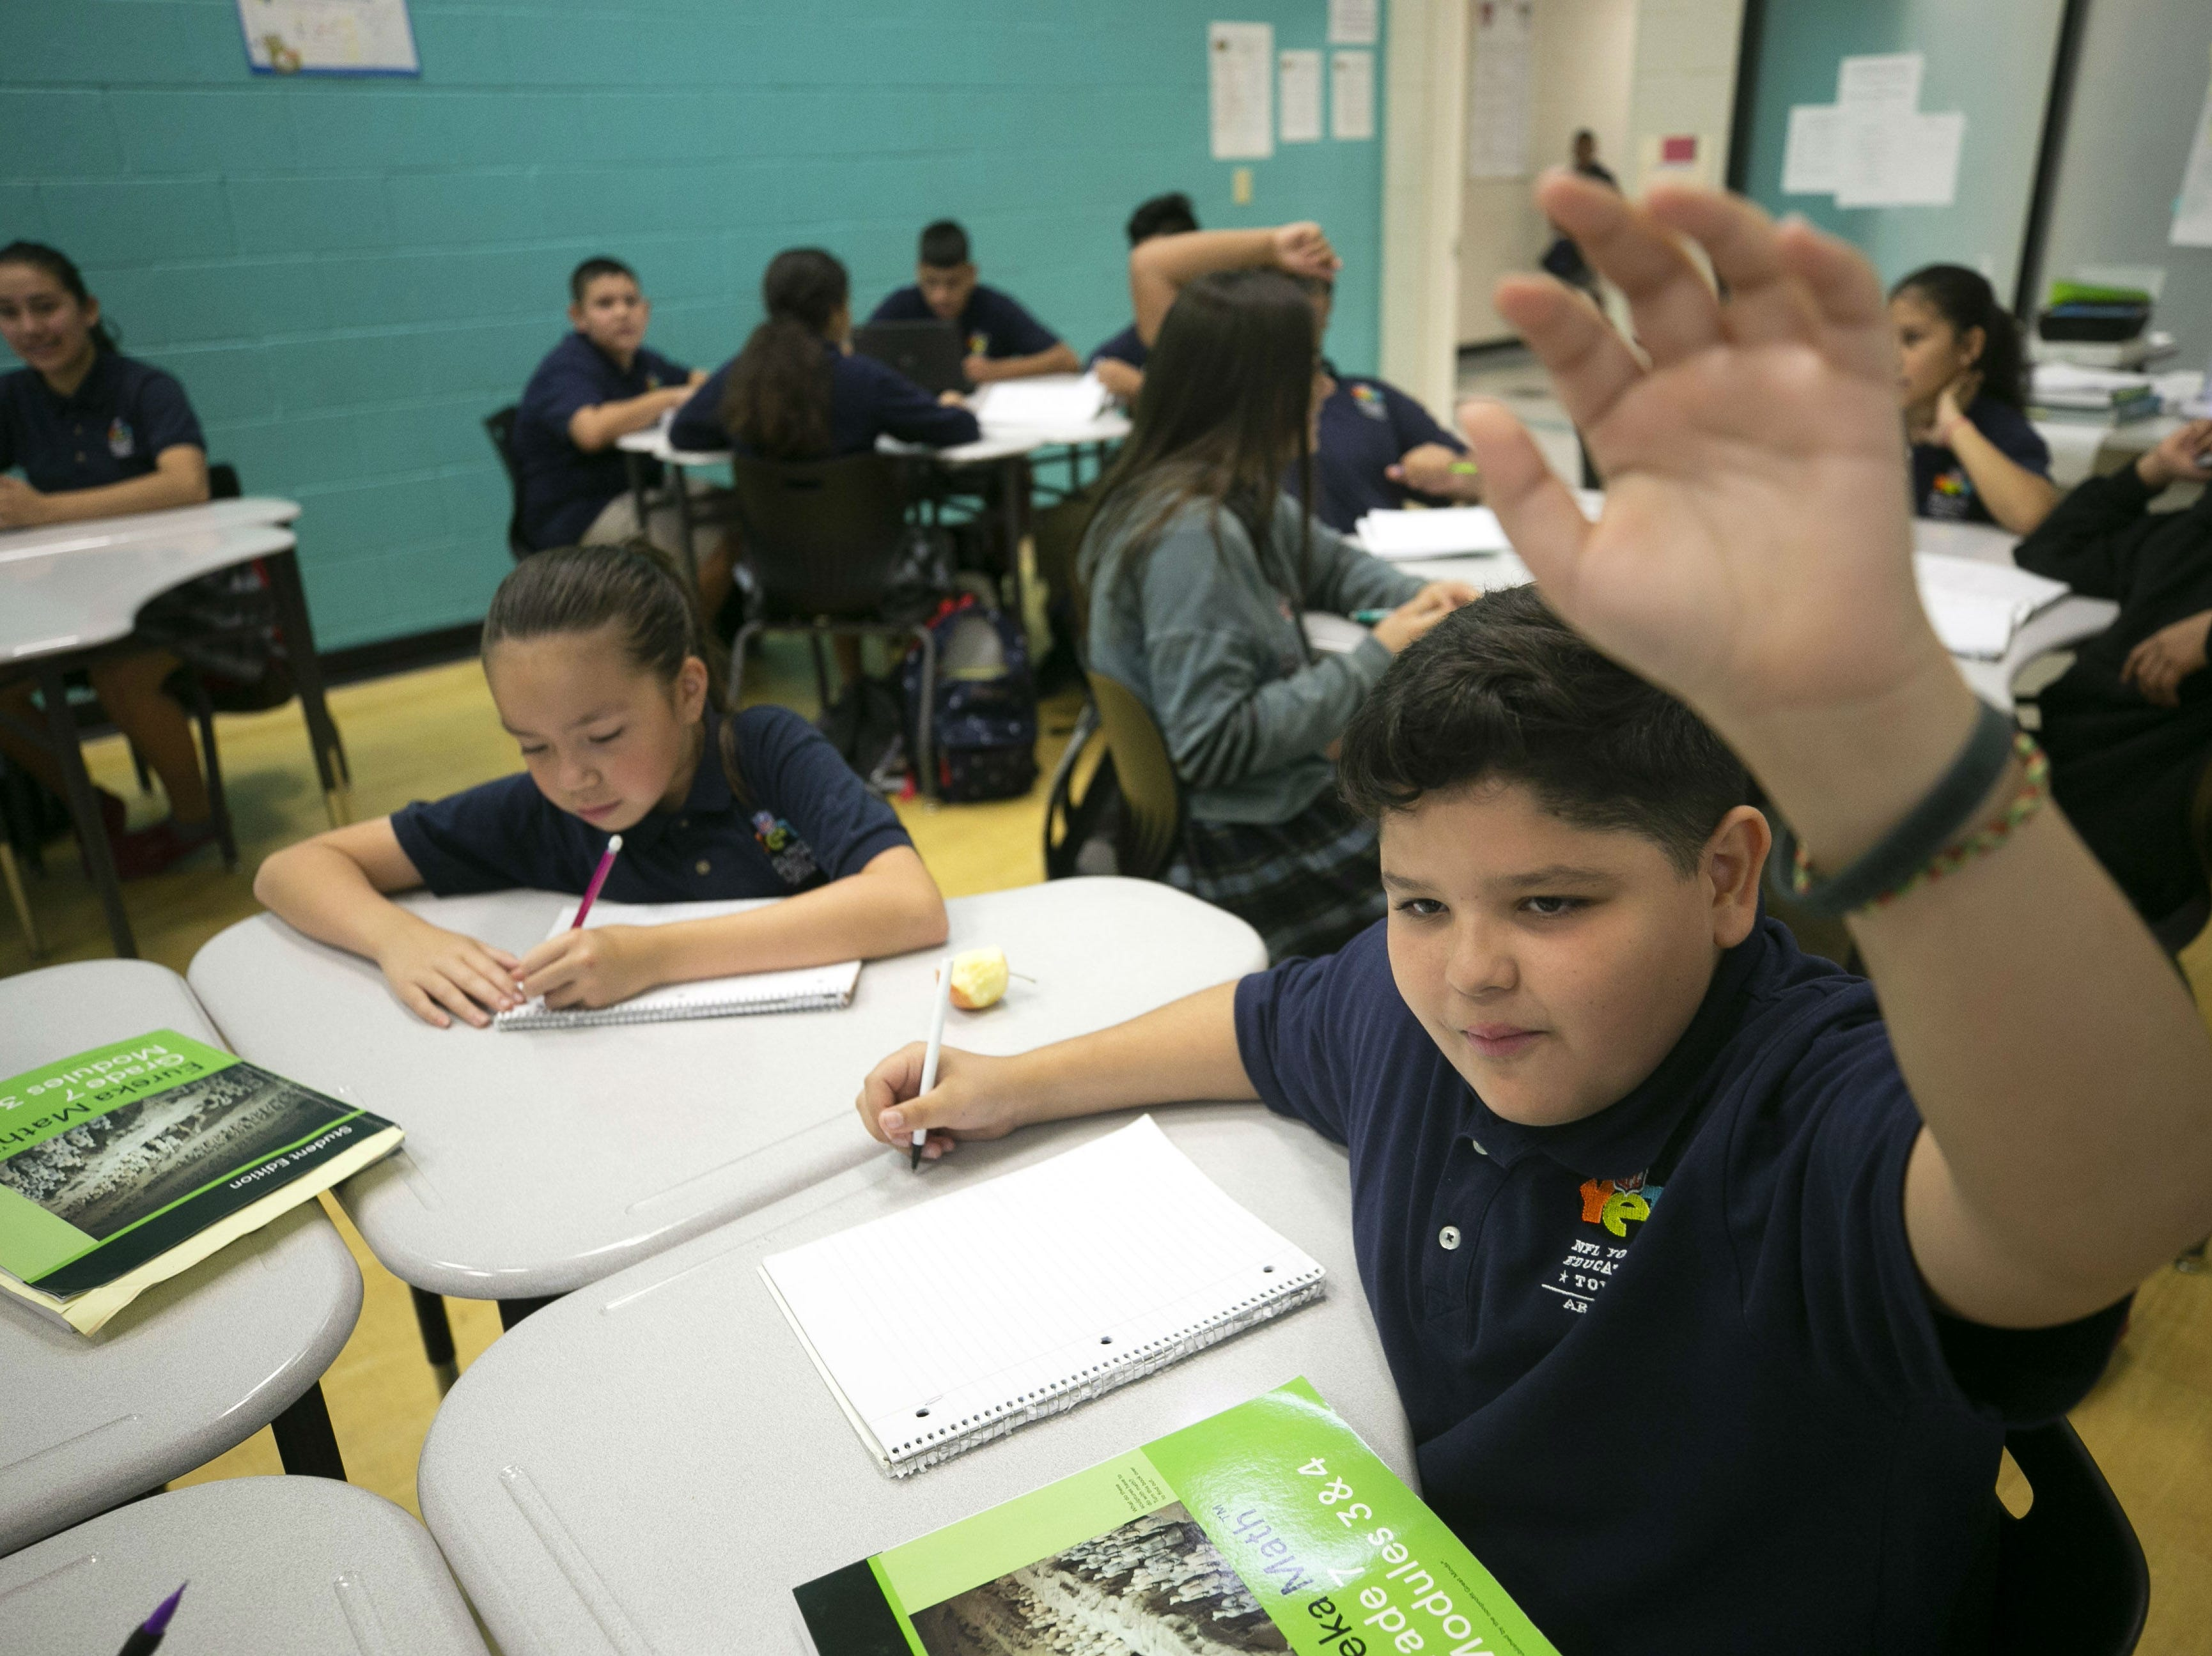 Israel Lopez Ramirez, 12, raises his hand in a seventh grade math class at the NFL YET College Prep Academy, a seventh-12th grade charter school in south Phoenix, on Nov. 5, 2018.